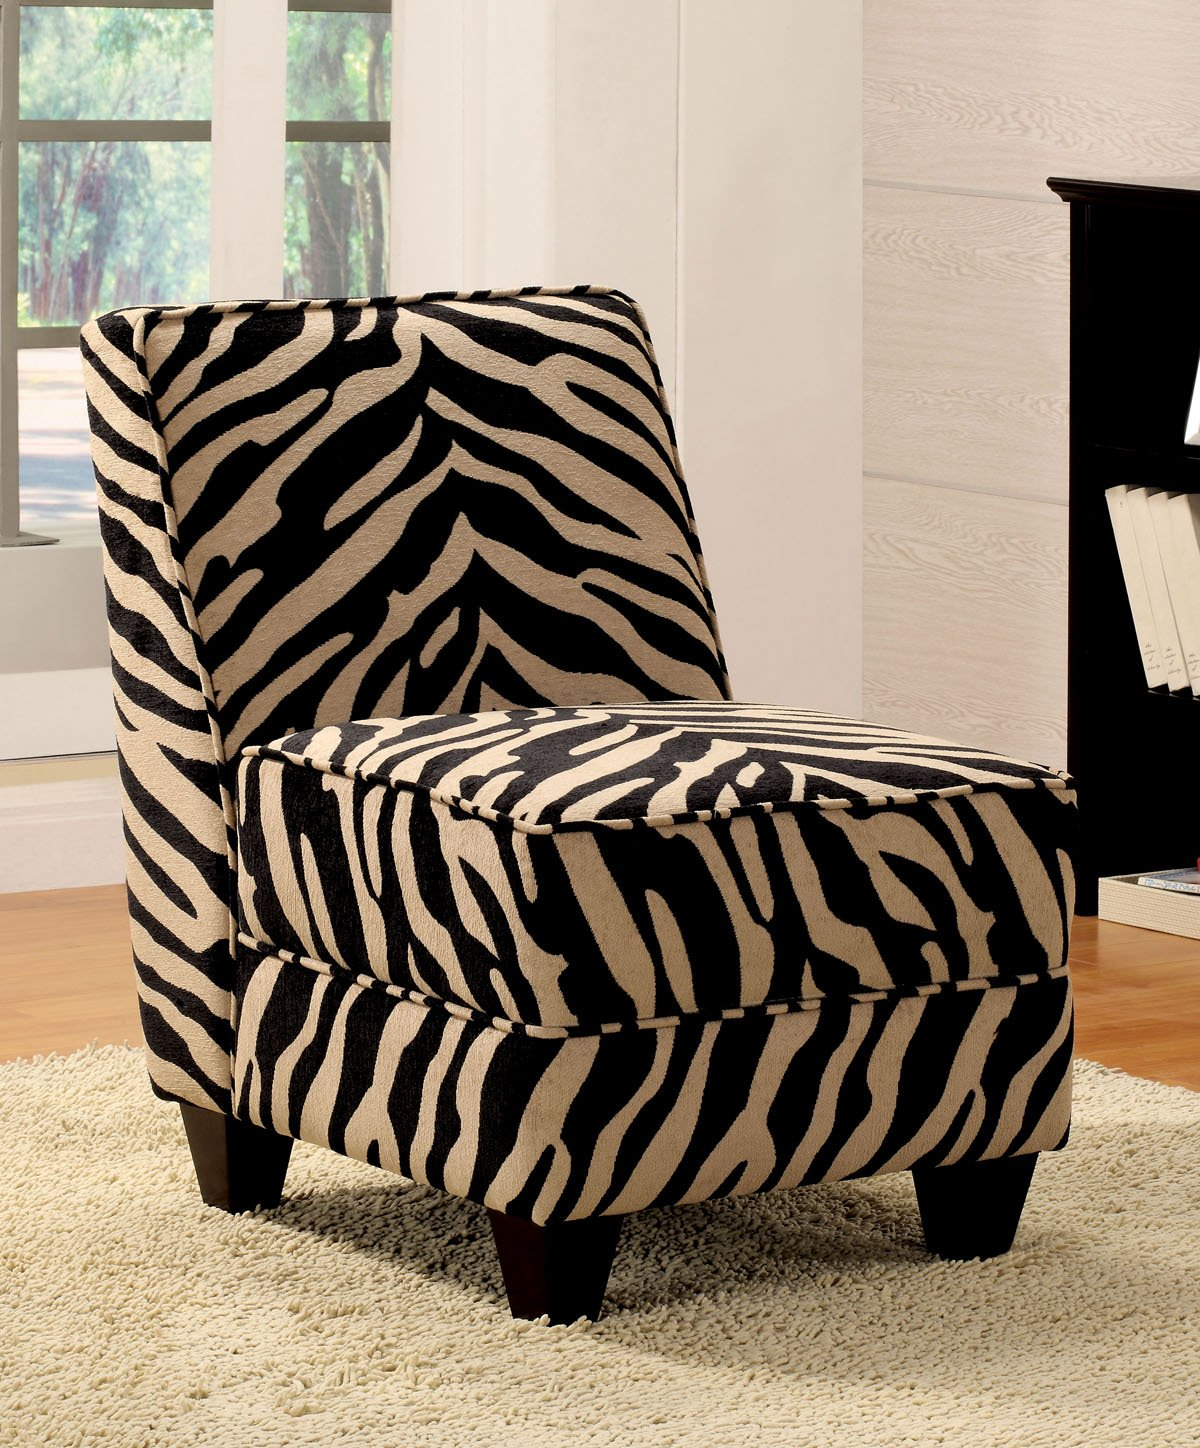 Fabric Zebra Chair SEE MORE